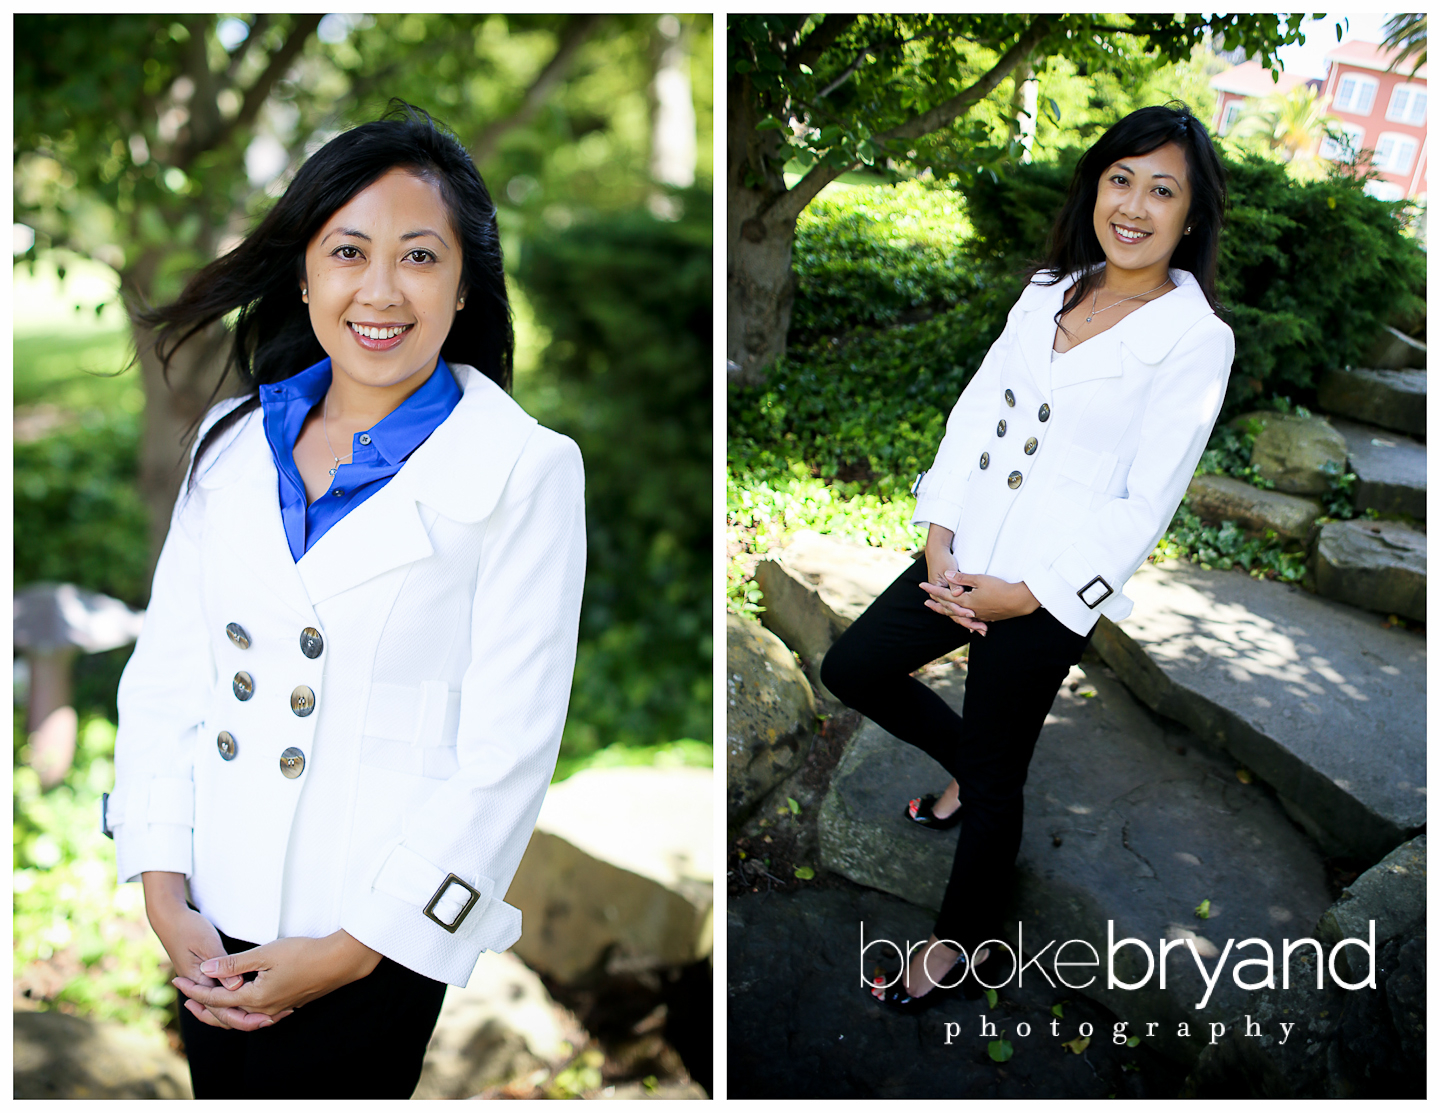 Brooke-Bryand-Photography-San-Francisco-Headshots-Cecilia-Daclan-2-up-Cecilia-1.jpg